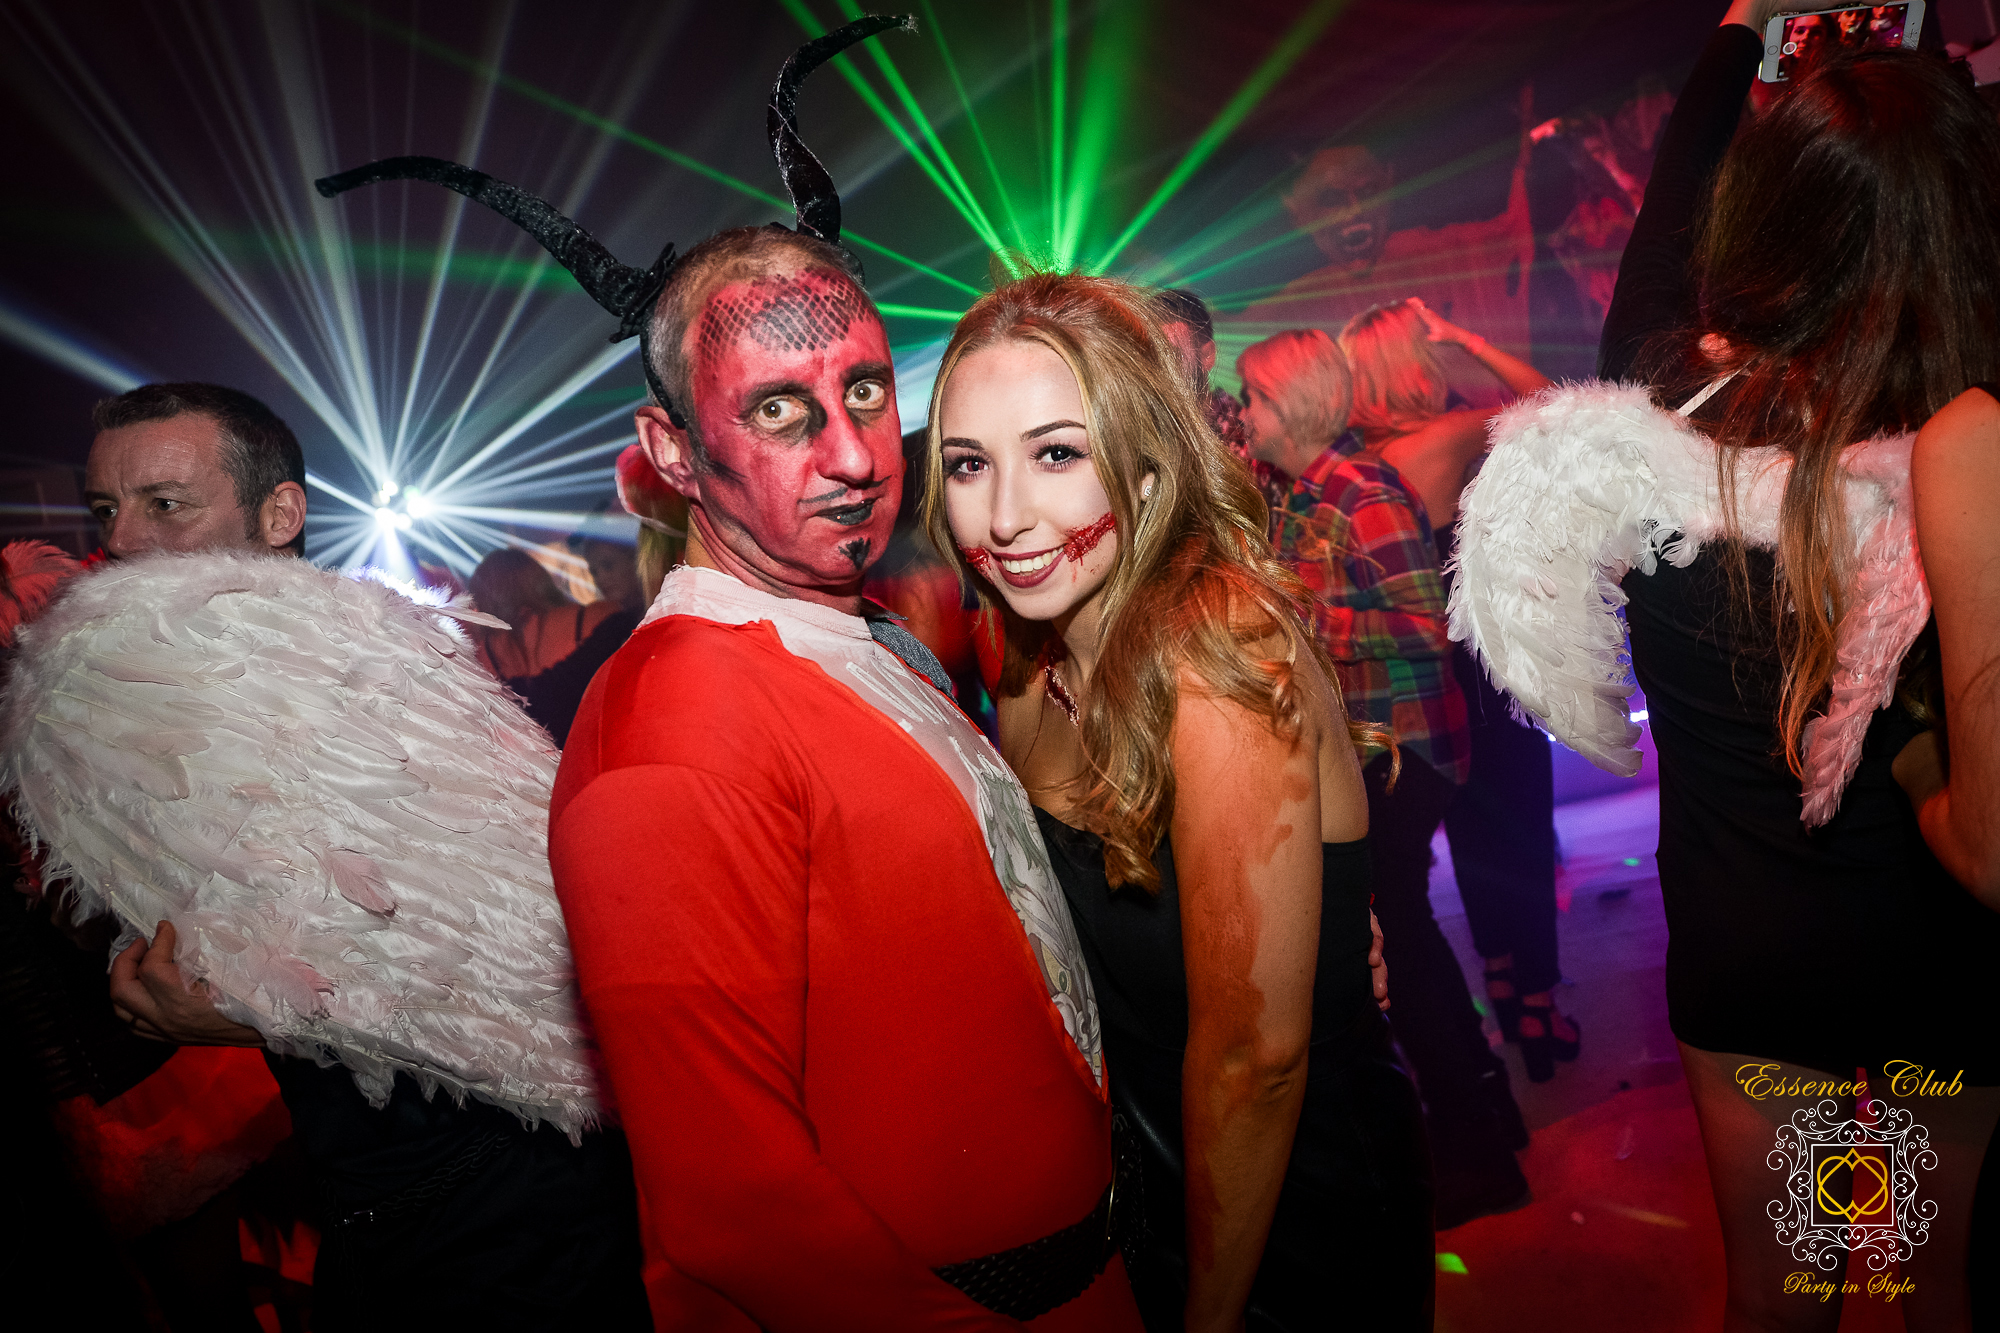 Essence club heaven and hell themed nights